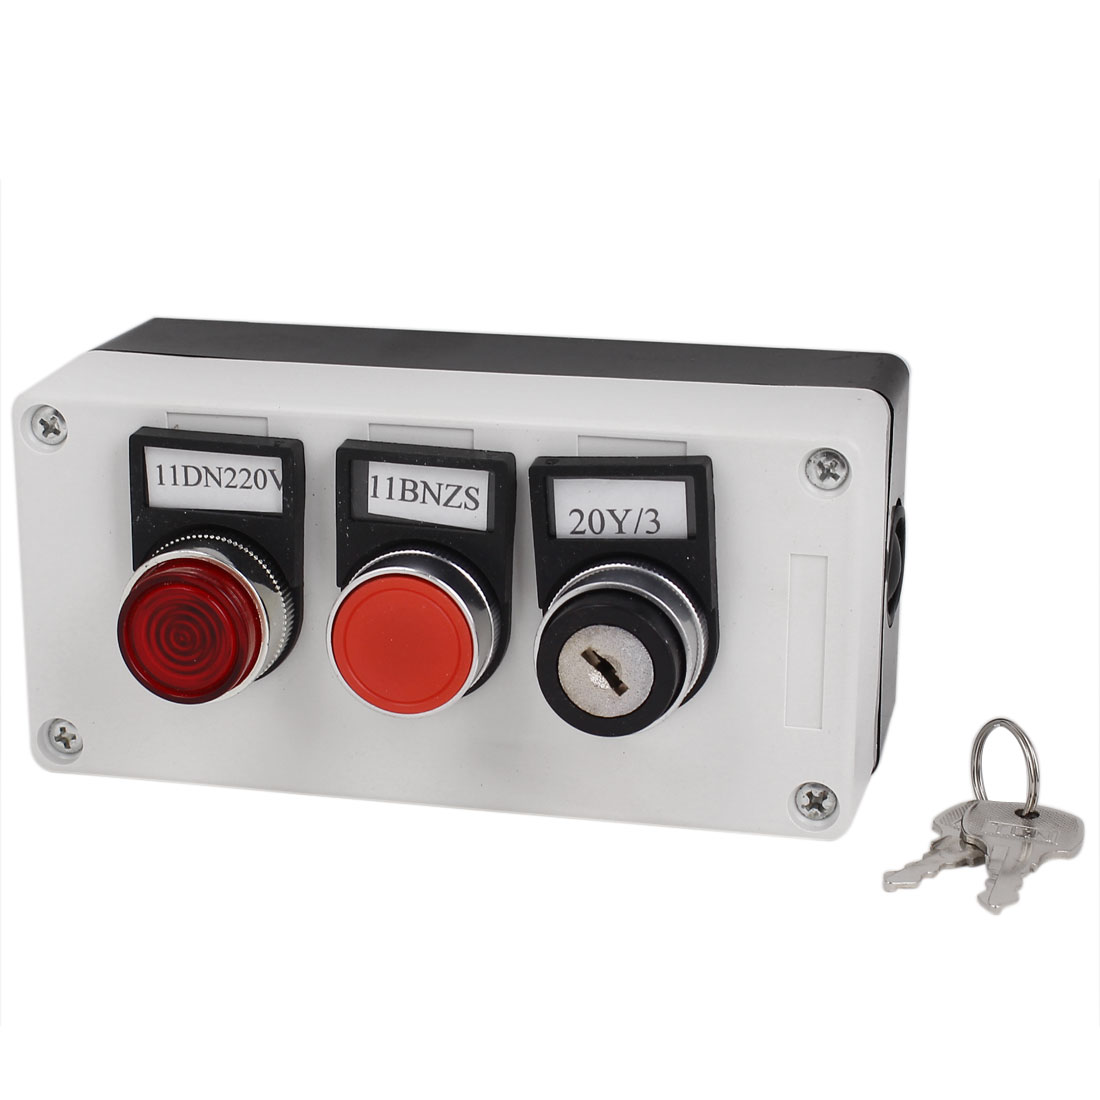 3 in 1 Key Locking Red Indicator Light Push Button Switch Station